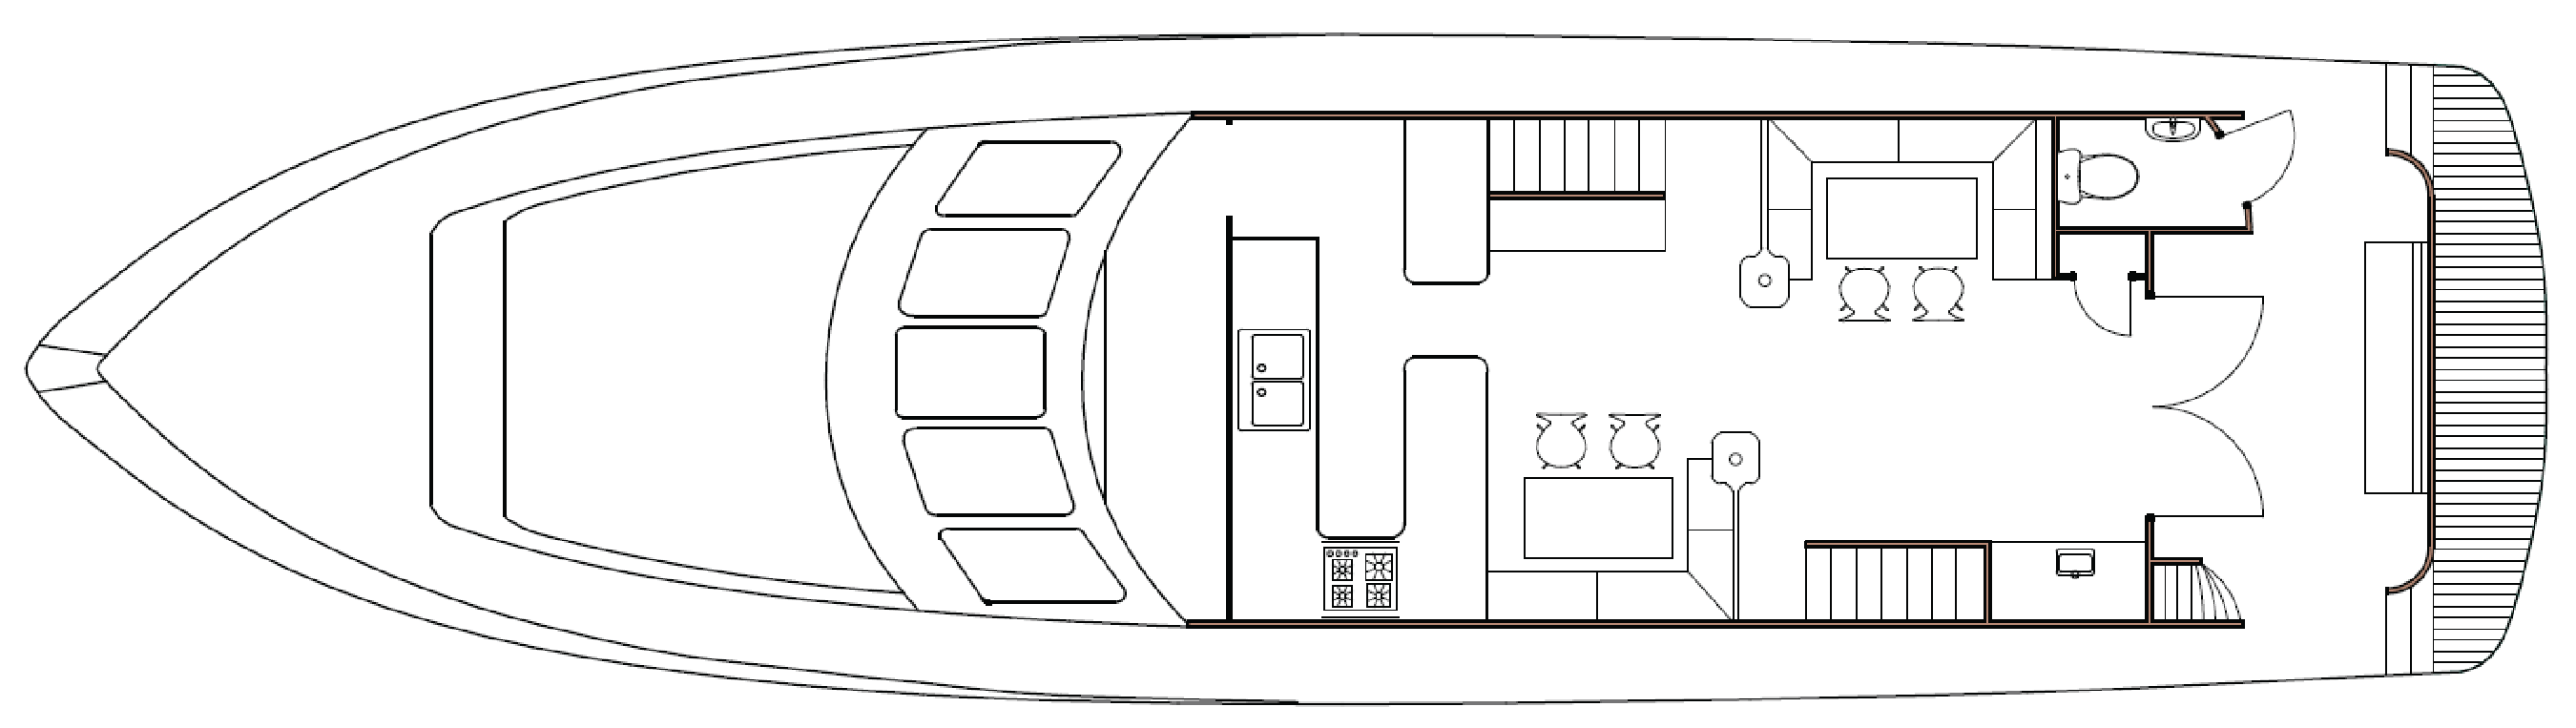 Southern Secret Middle deck floor plan showing kitchen, dining and living areas.